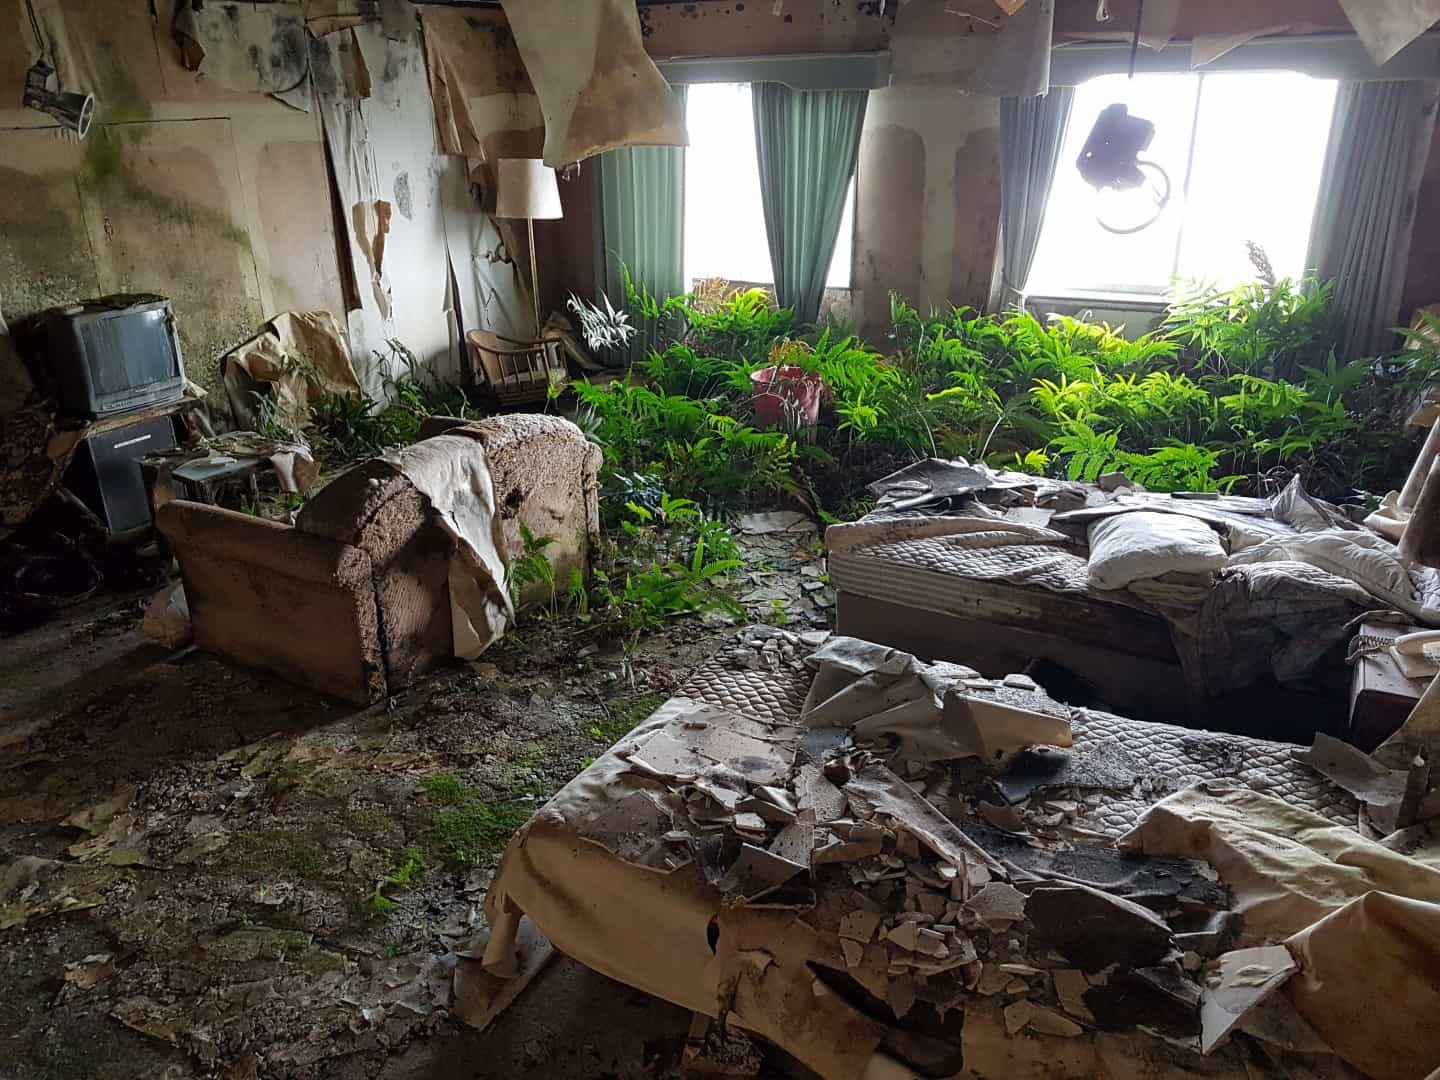 Nature Reclaims a Room